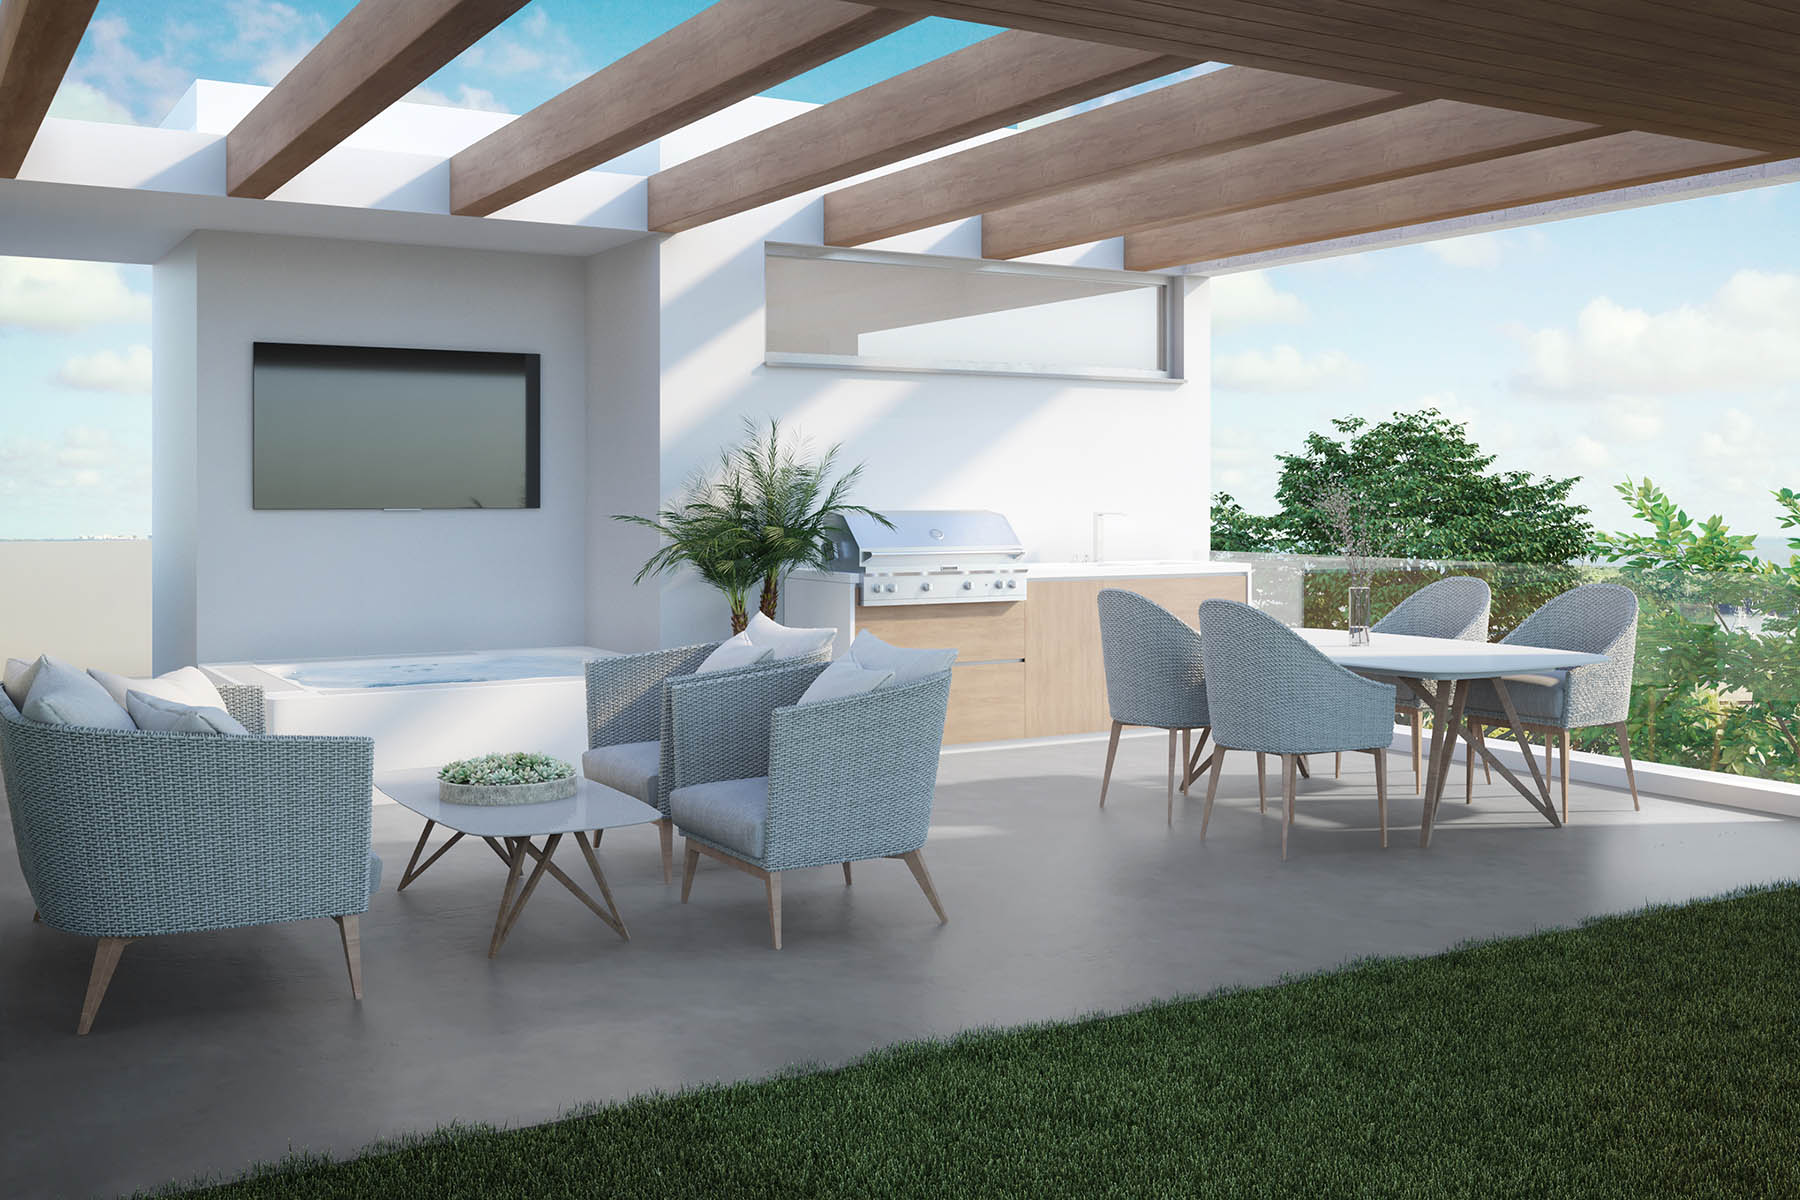 townhouses for Active at 2924 Bird Avenue 4 Coconut Grove, Florida 33133 United States